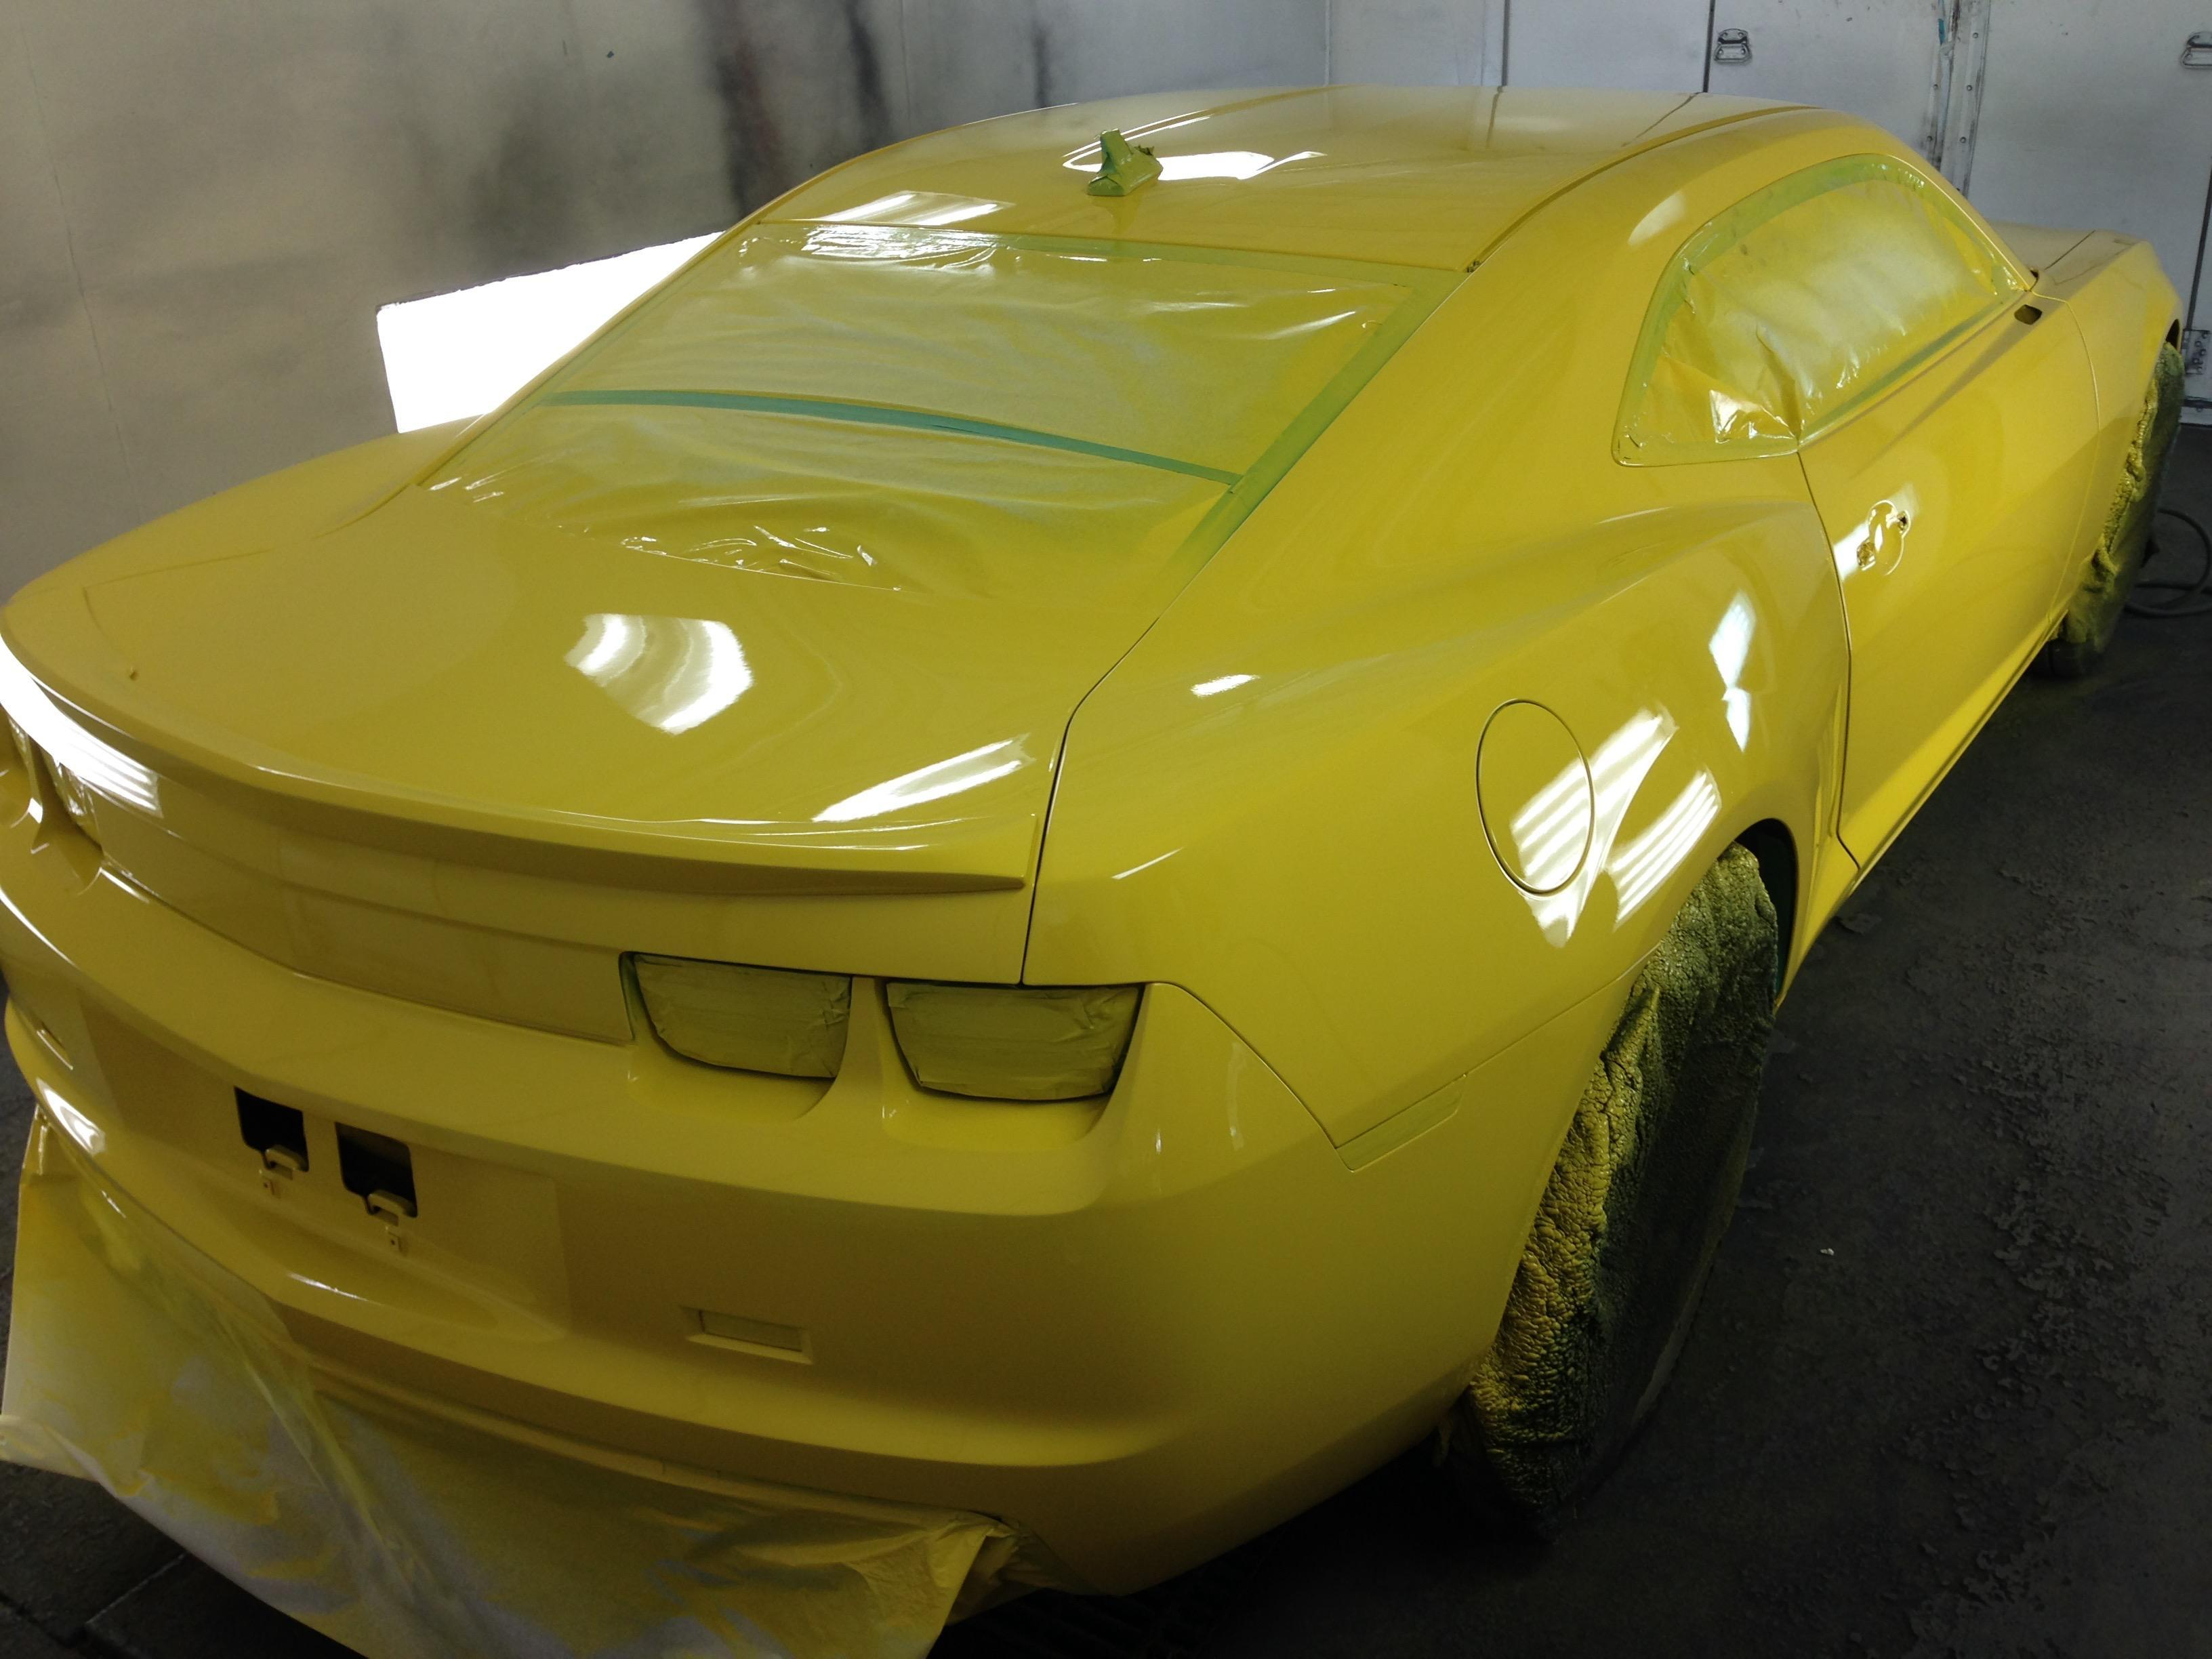 Maaco Collision Repair & Auto Painting image 2